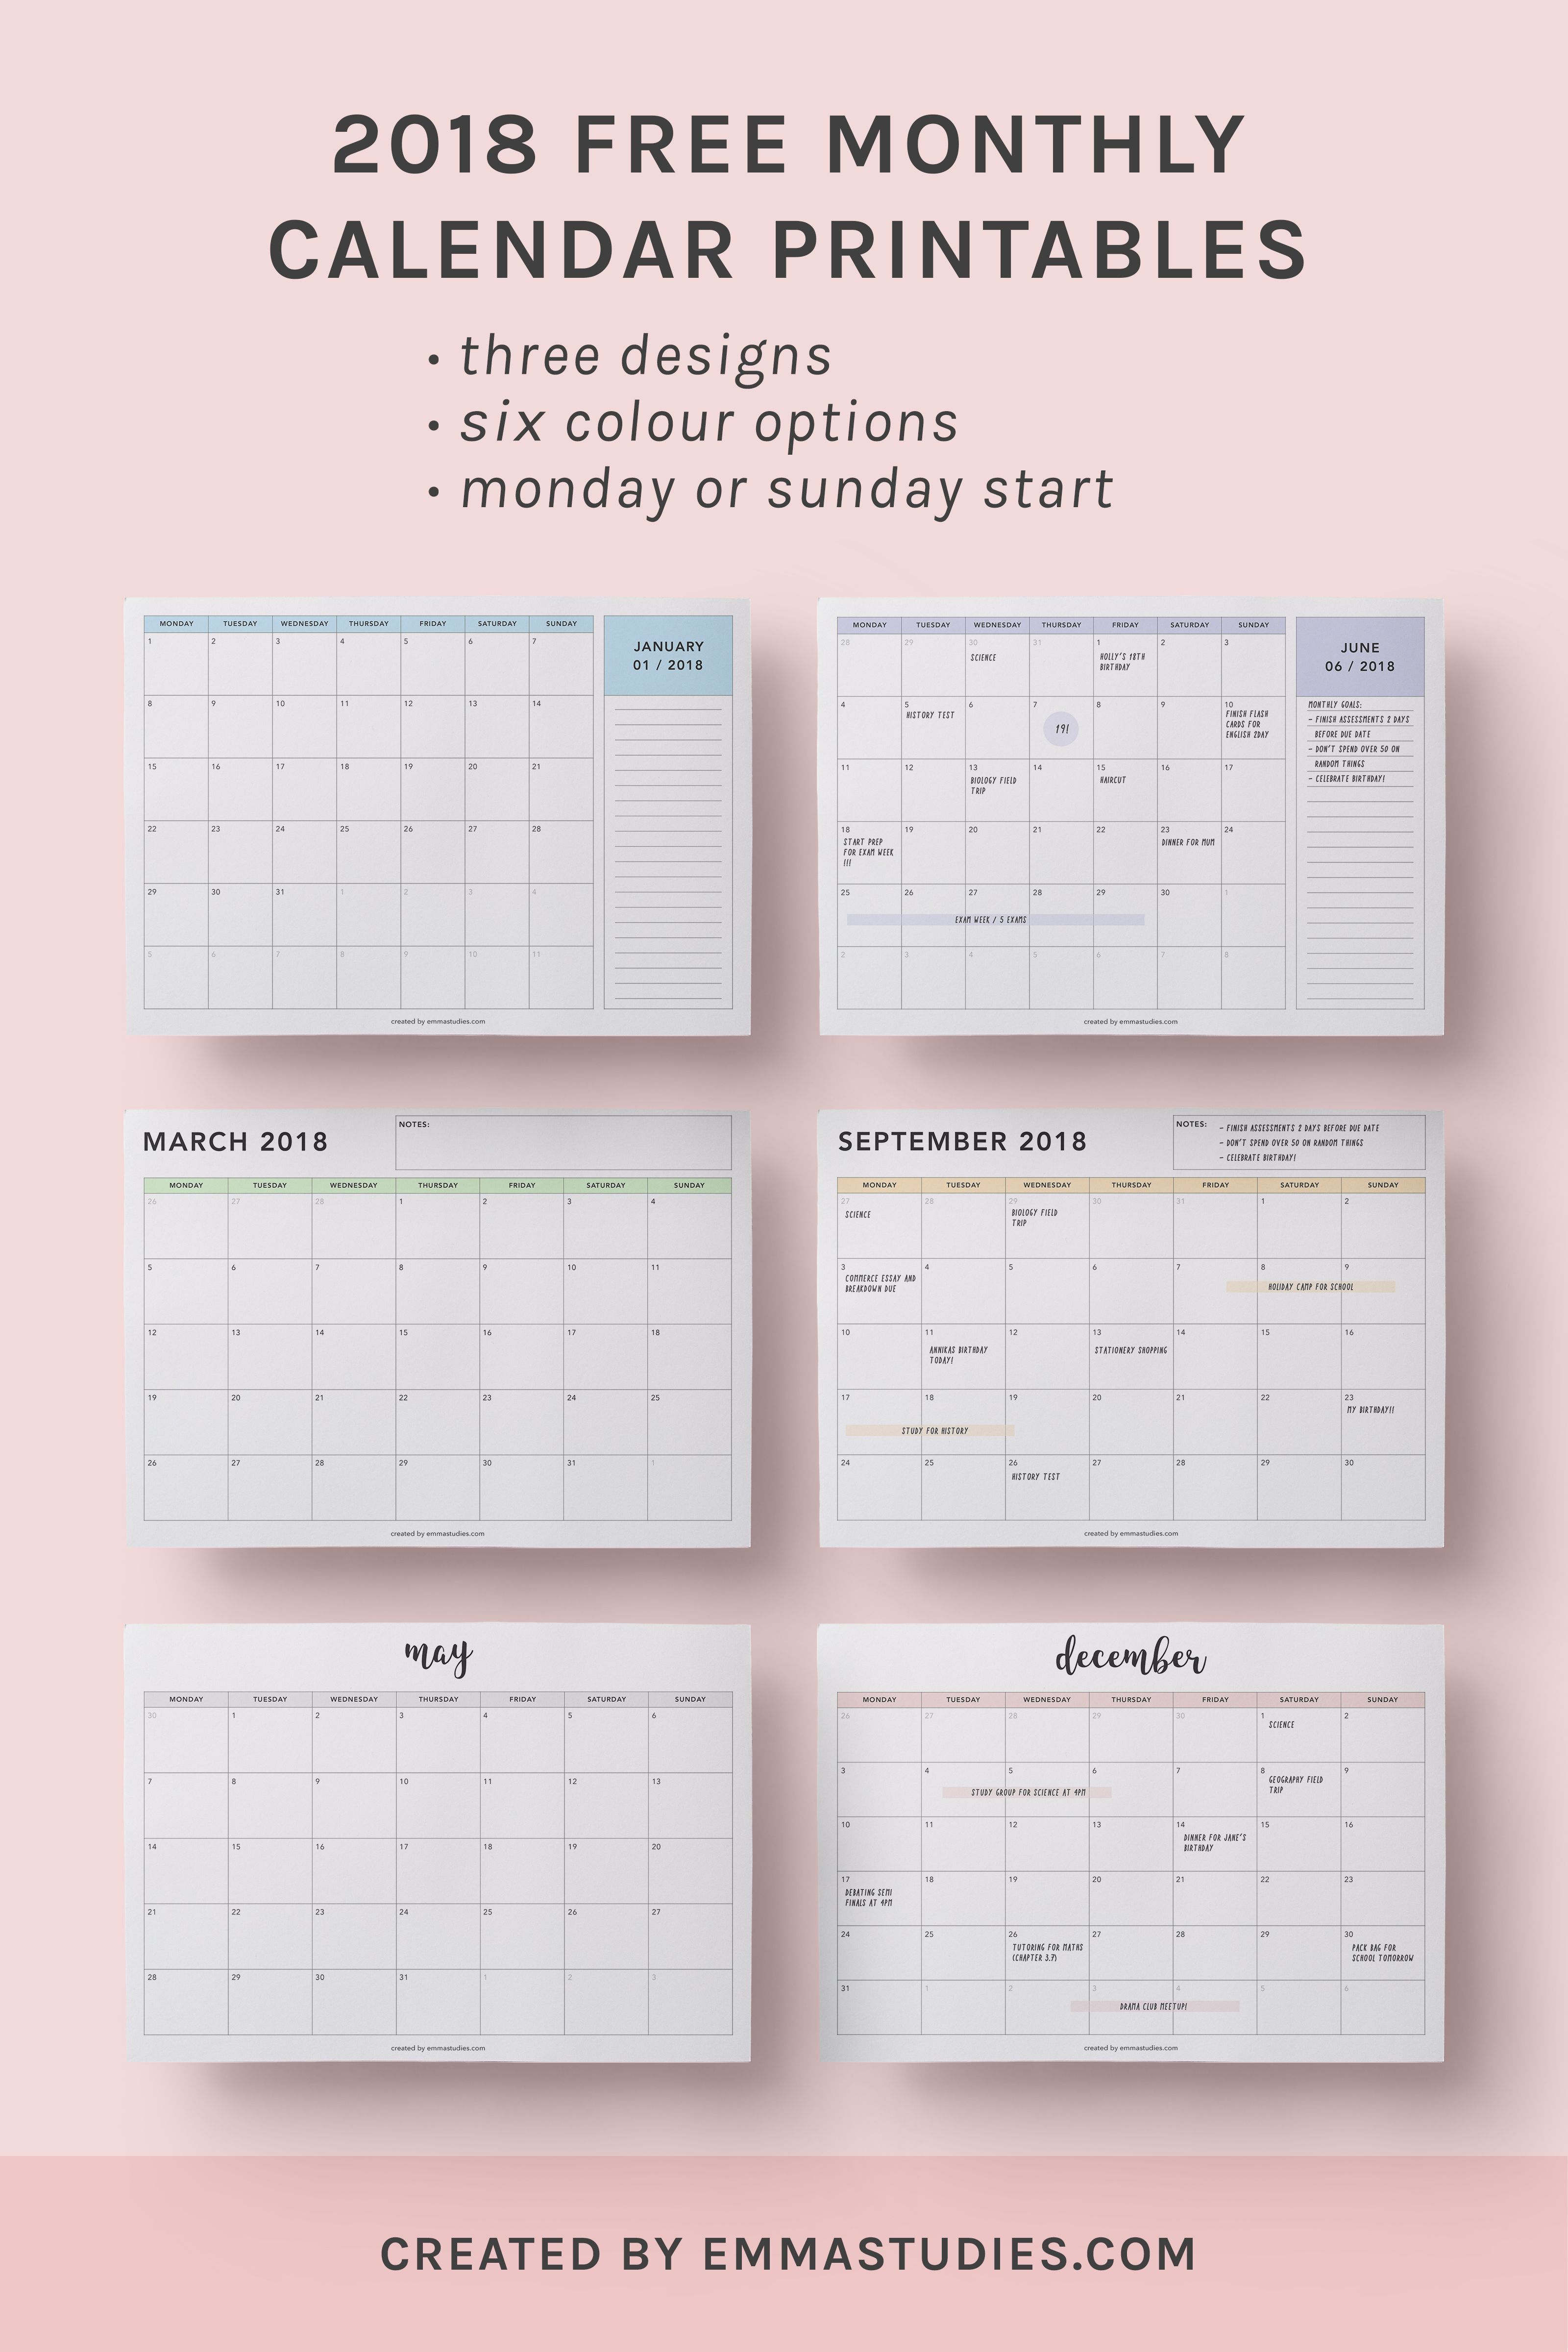 2018 monthly free printable calendars by emmastudies. Black Bedroom Furniture Sets. Home Design Ideas